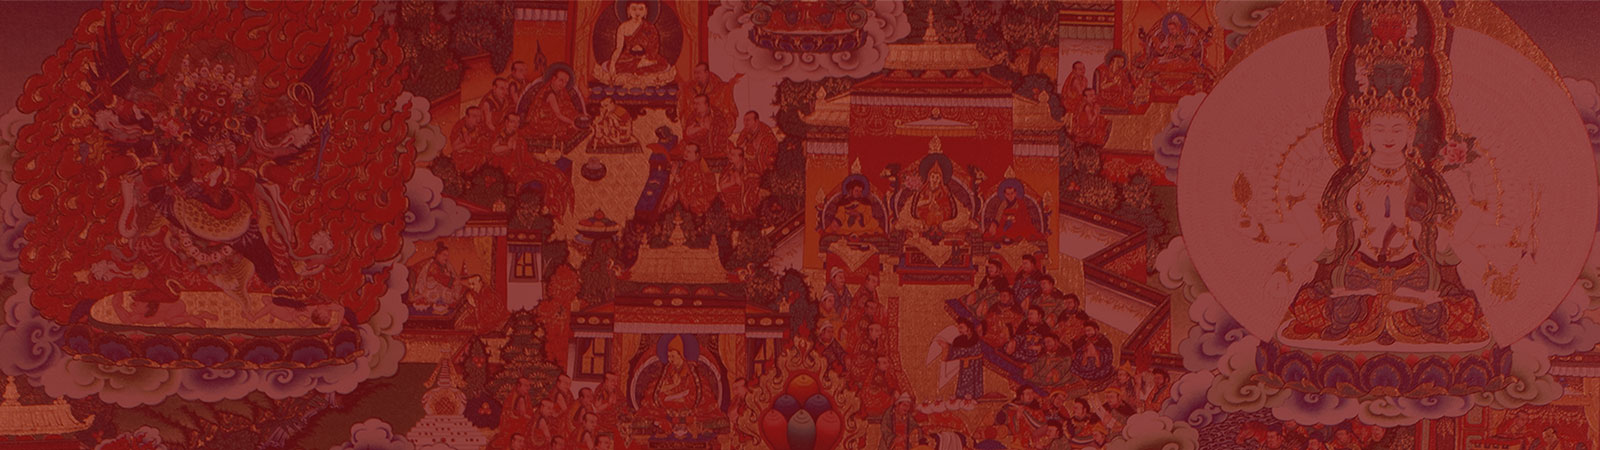 The Eighth Dalai Lama